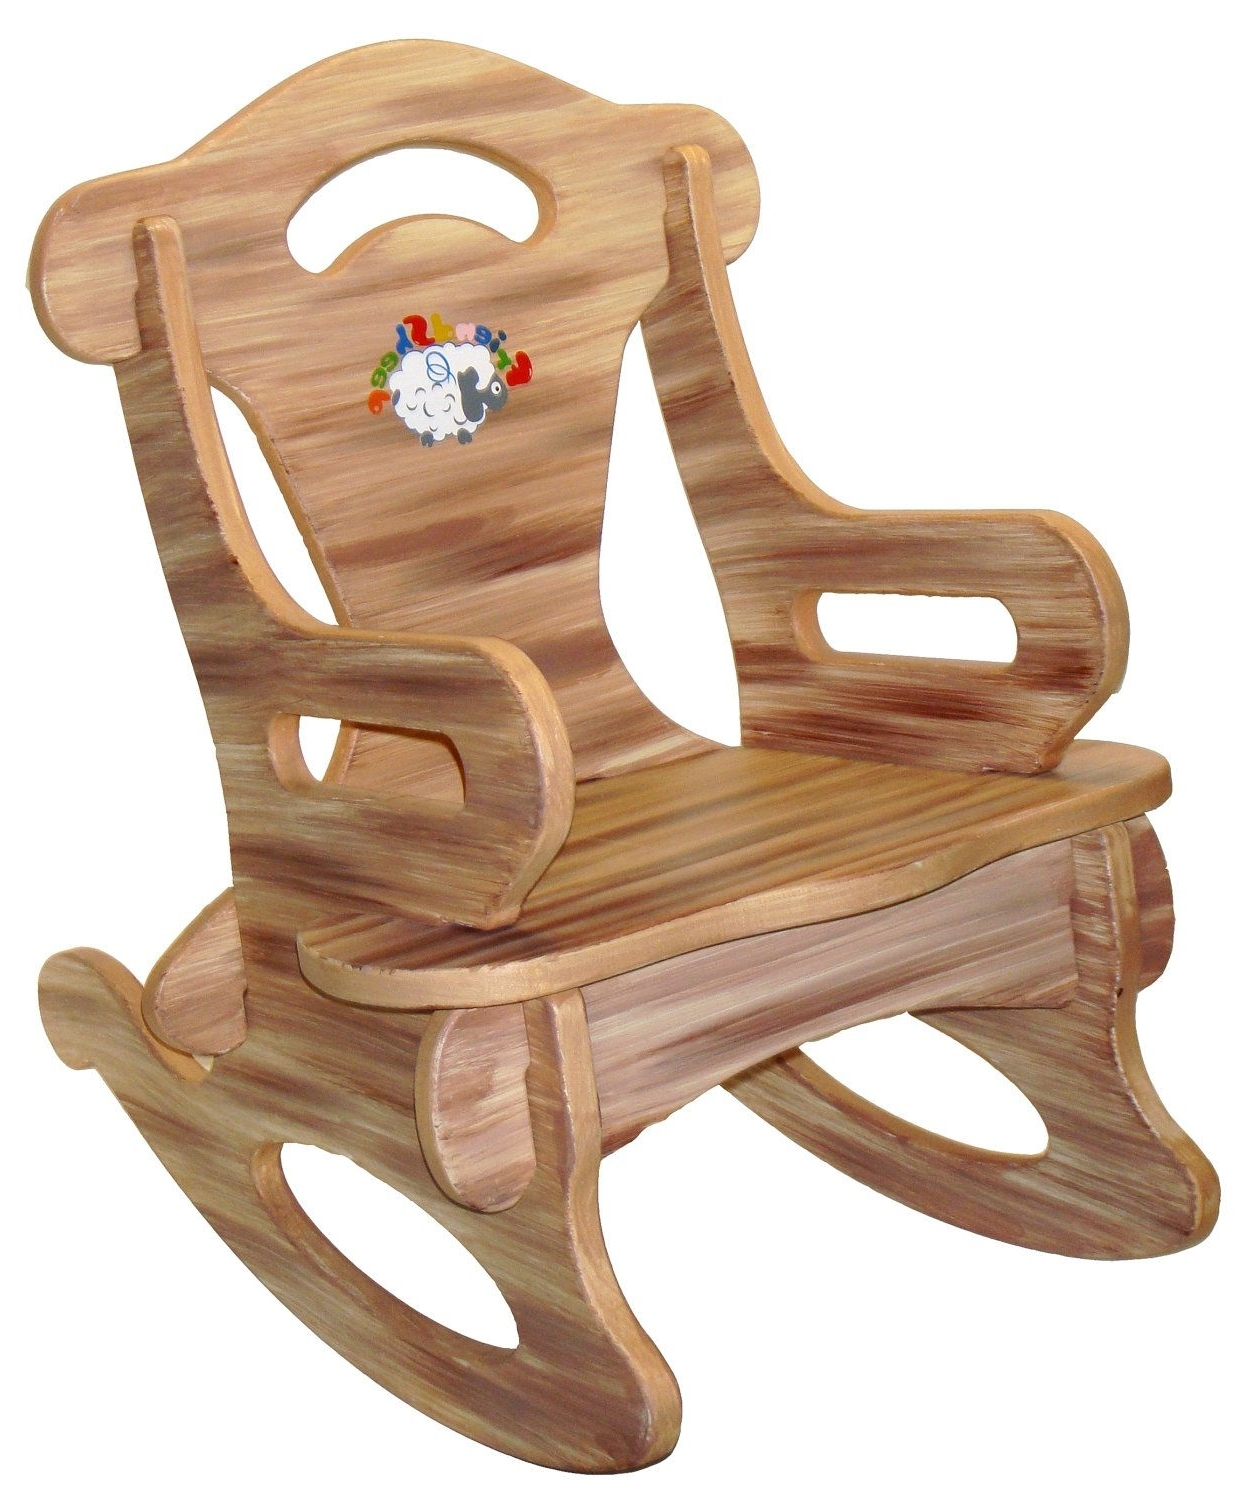 Brown Puzzle Rocker Rocking Chair Solid Wood For Kid, Child, Baby For Trendy Rocking Chairs For Toddlers (View 2 of 20)